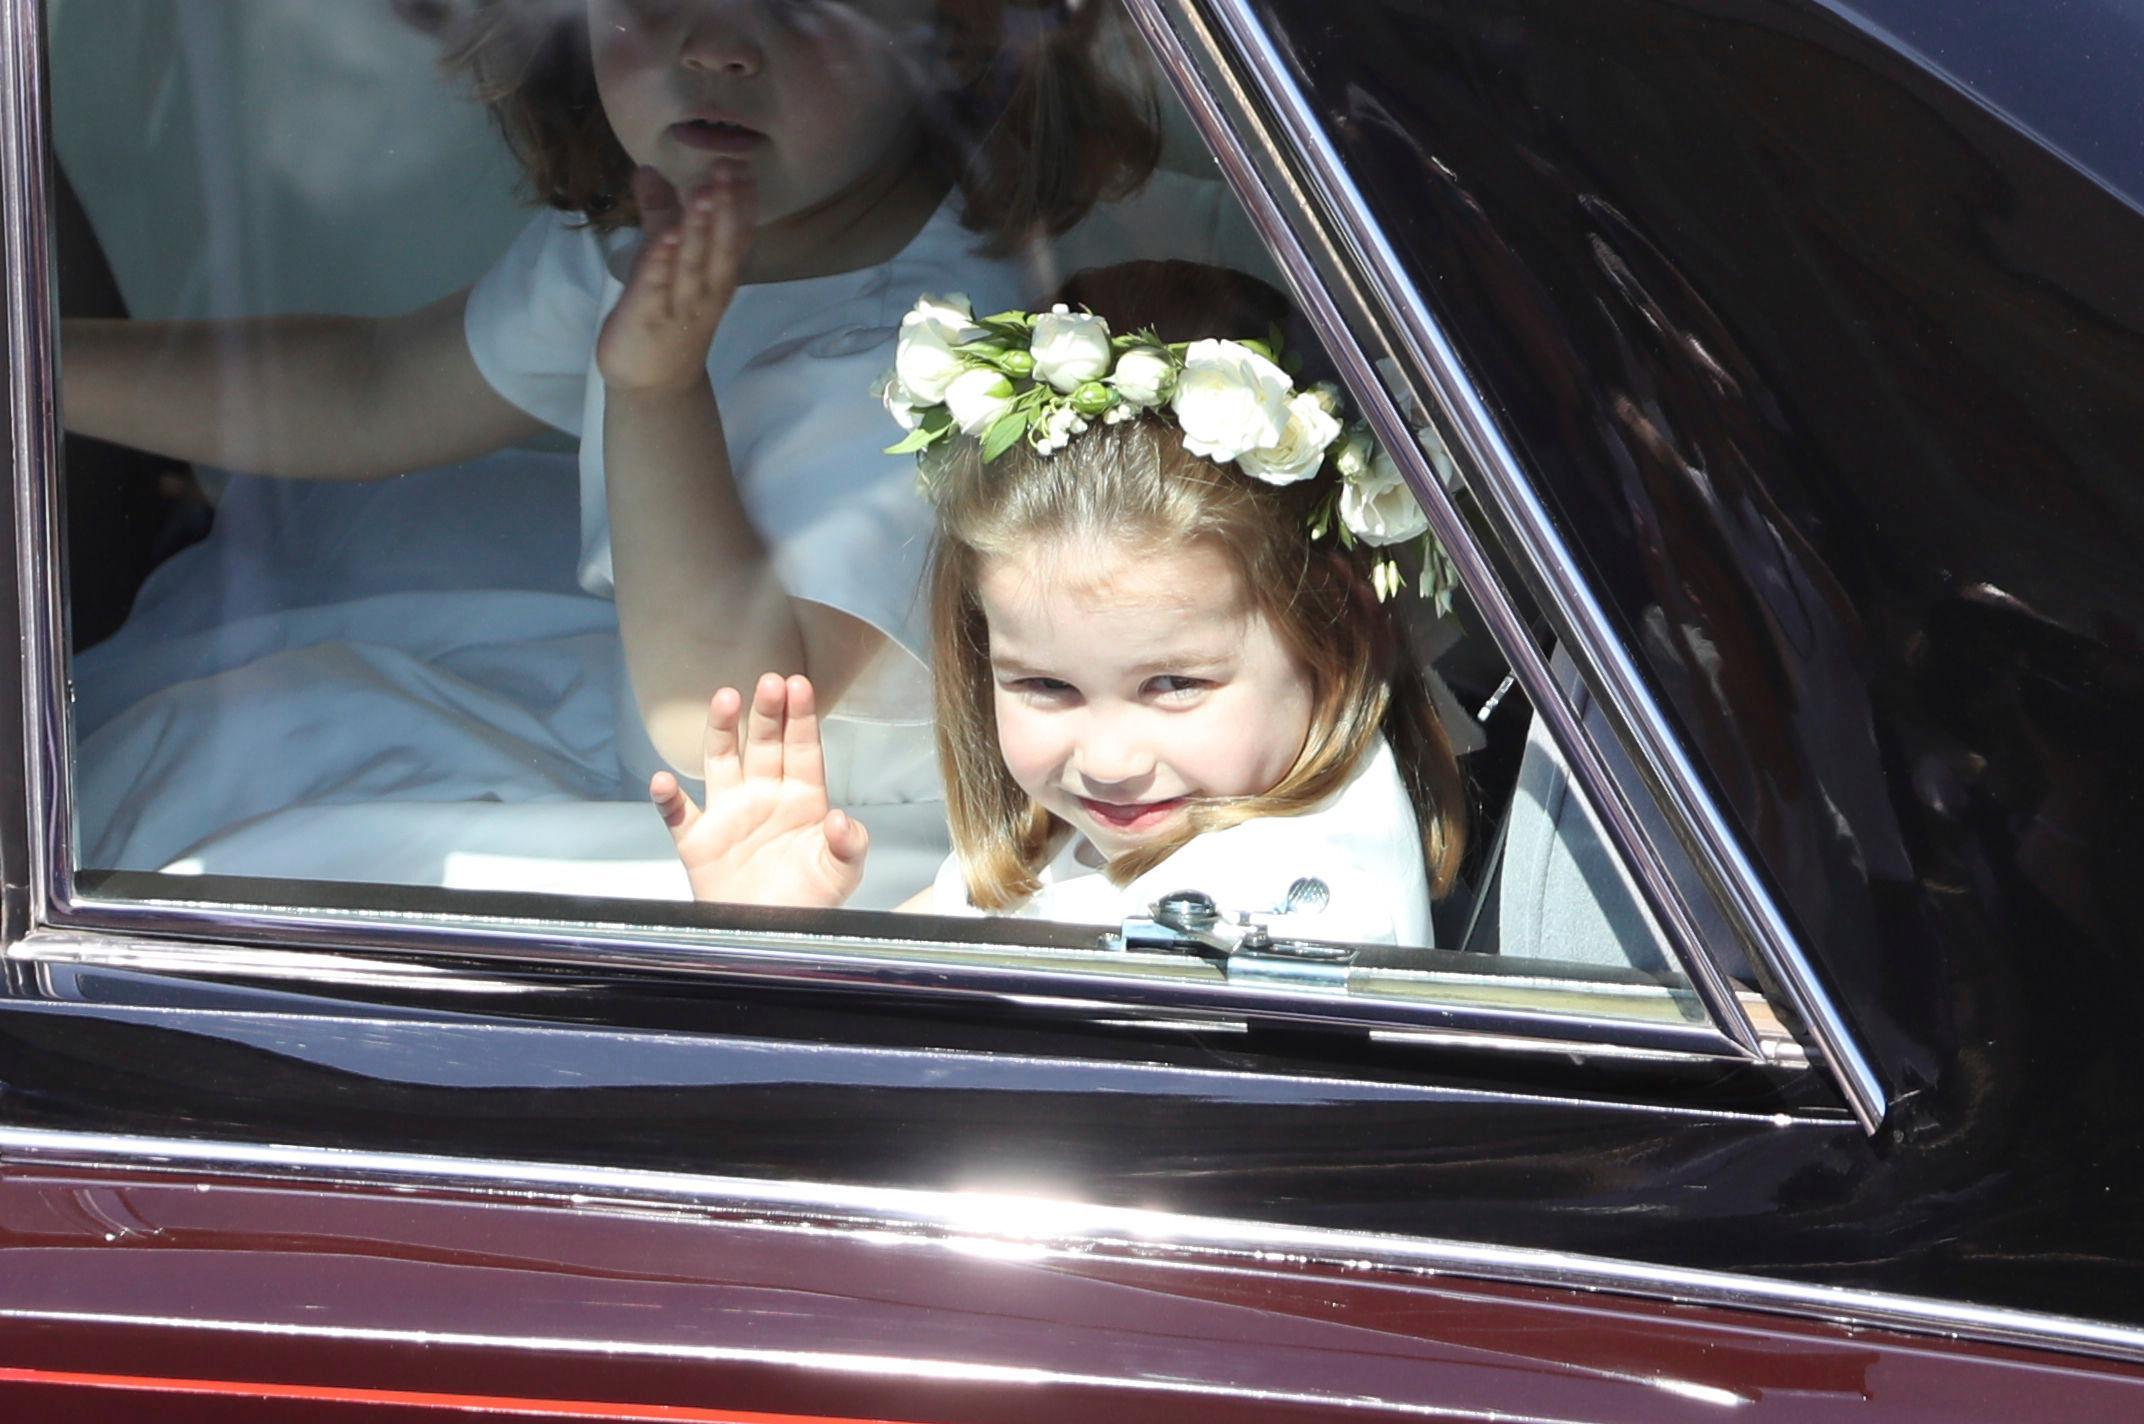 Princess Charlotte waves as she rides in a car to the wedding ceremony of Prince Harry and Meghan Markle at St. George's Chapel in Windsor Castle in Windsor, near London, England, Saturday, May 19, 2018. (Andrew Milligan/pool photo via AP)